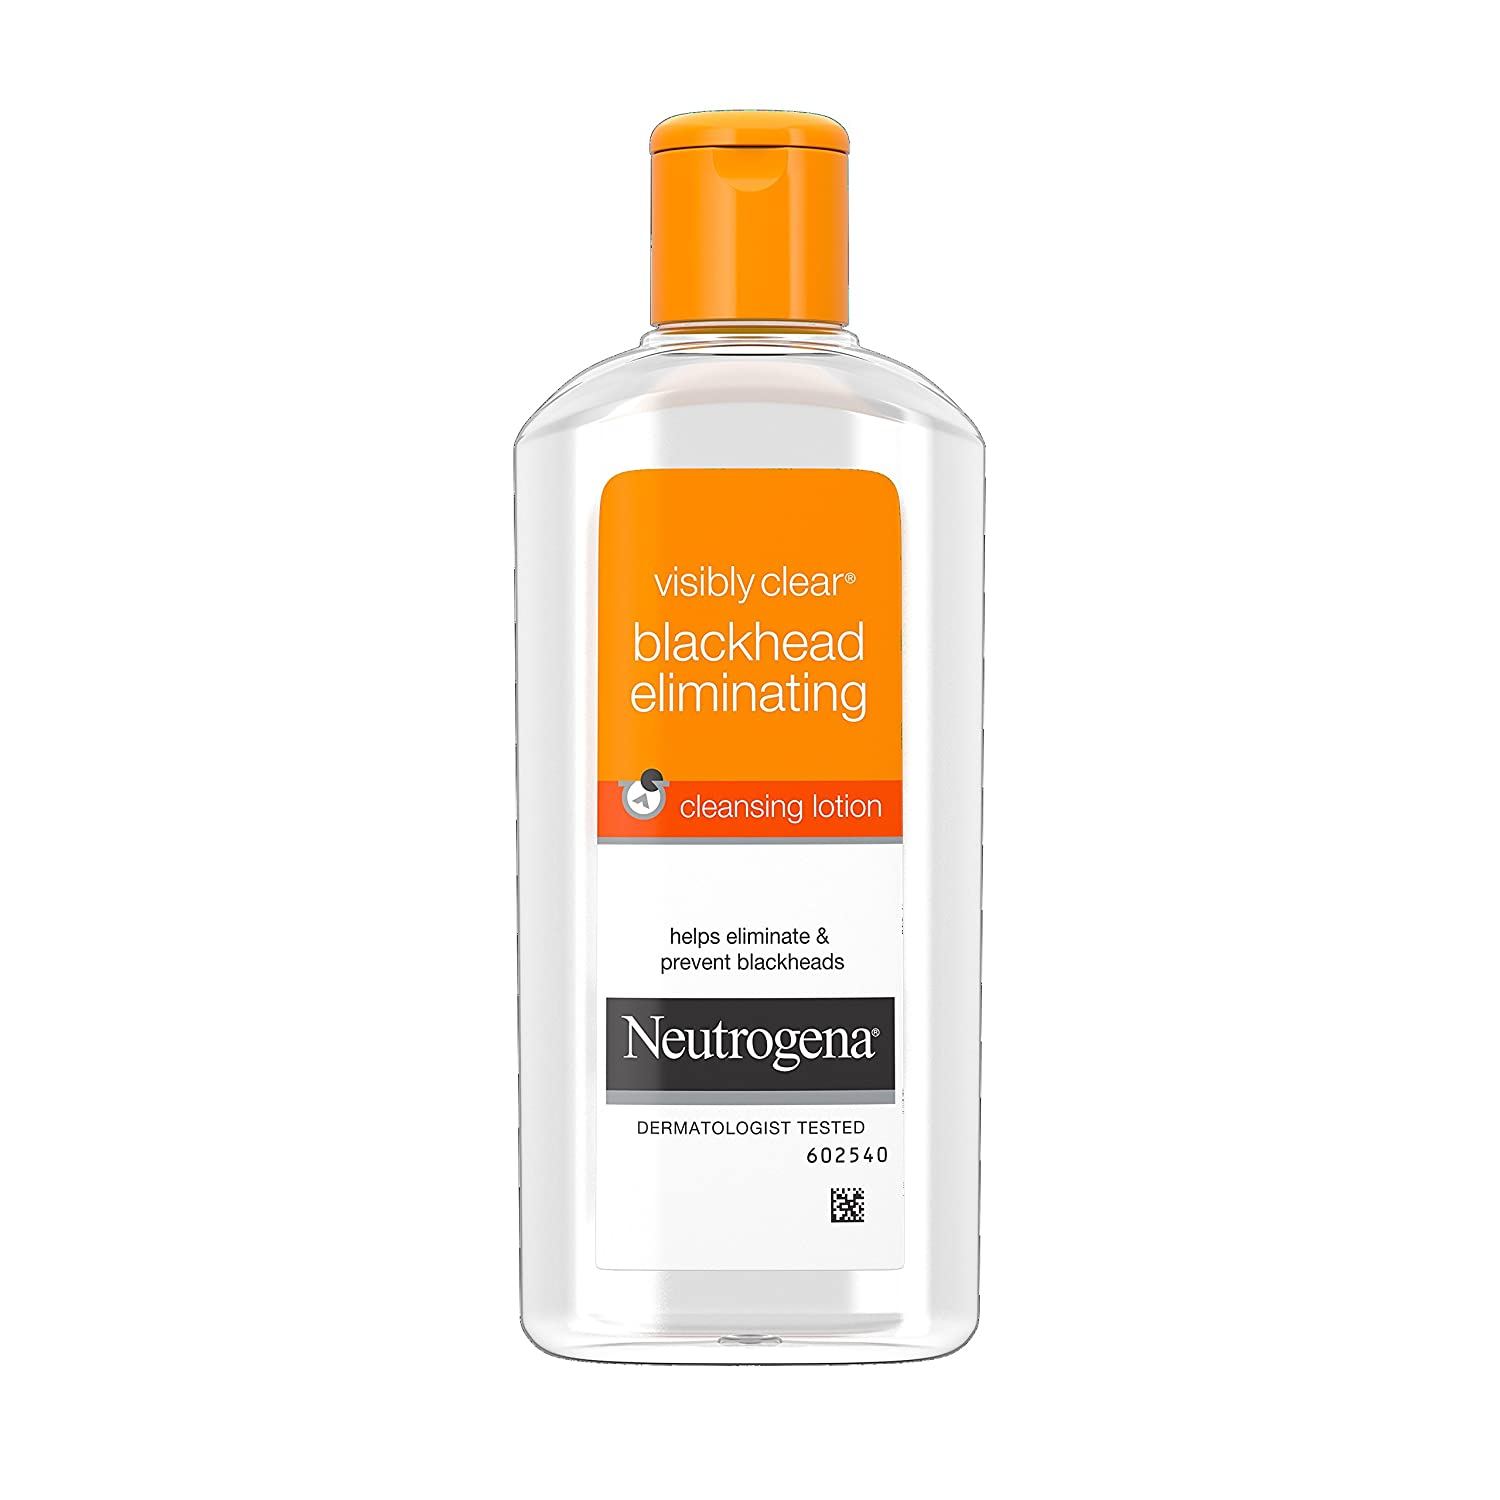 Neutrogena Visibly Clear Blackhead Eliminating Cleansing Lotion 200 ml Johnson and Johnson 4290007